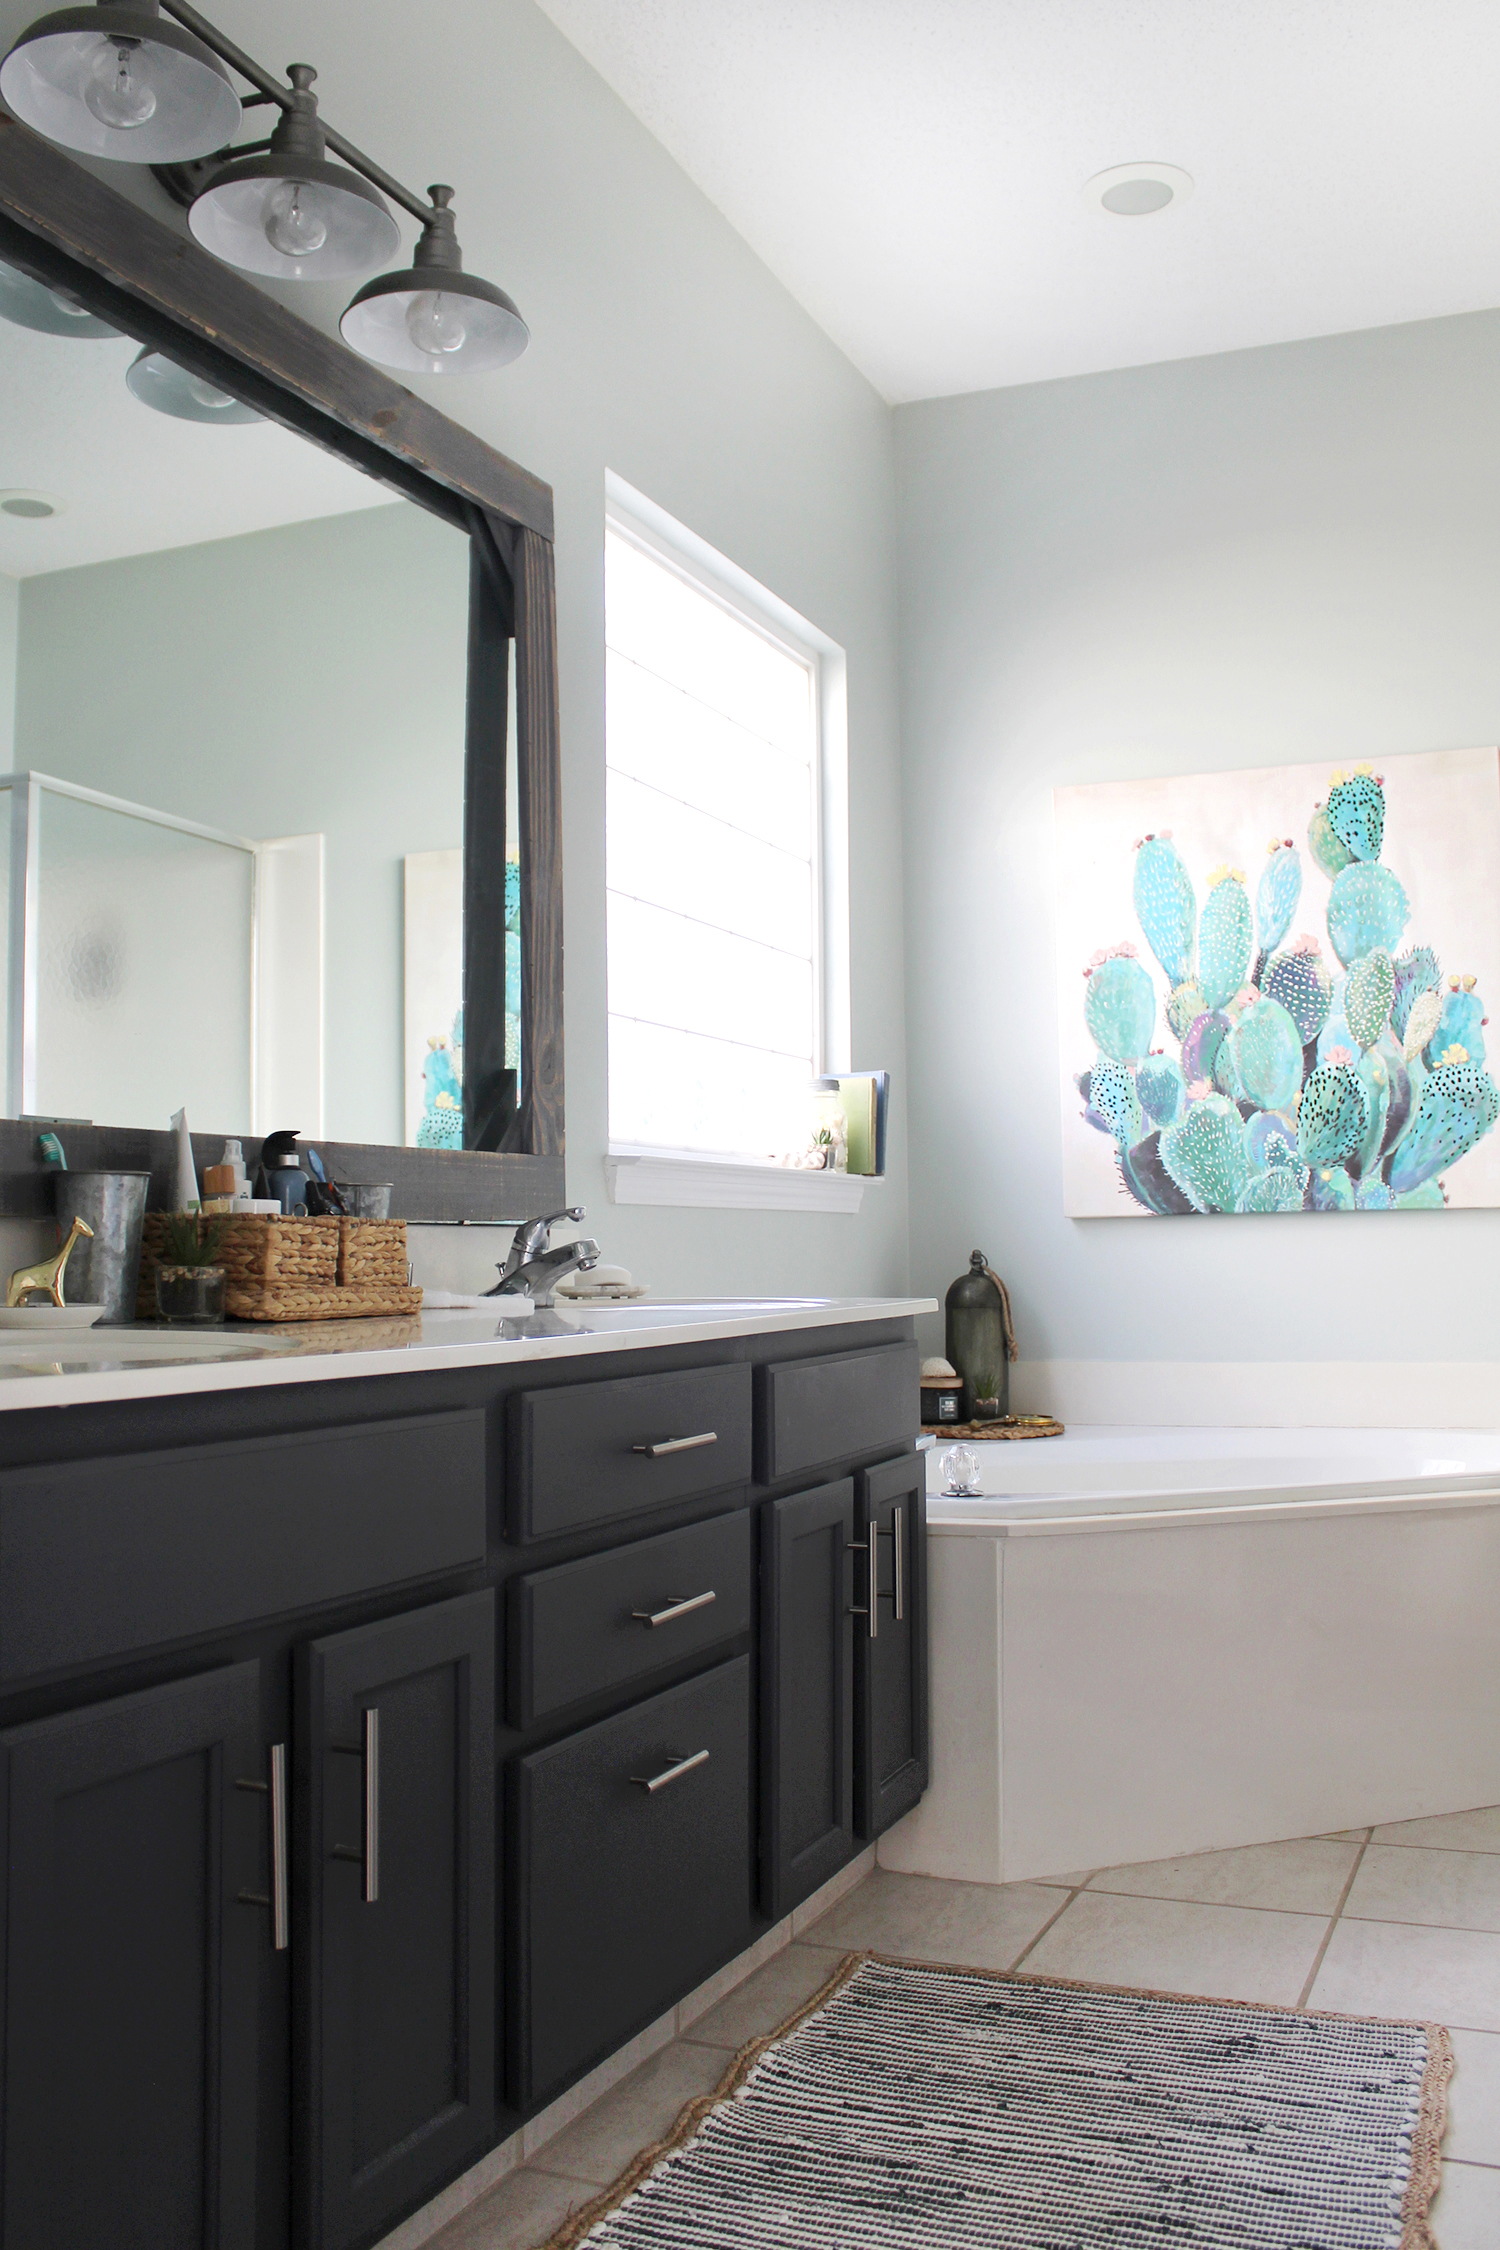 A Master Bathroom Refresh with nautical accessories #masterbathroom #budgetdecor #Ad #TuesdayMorningFinds